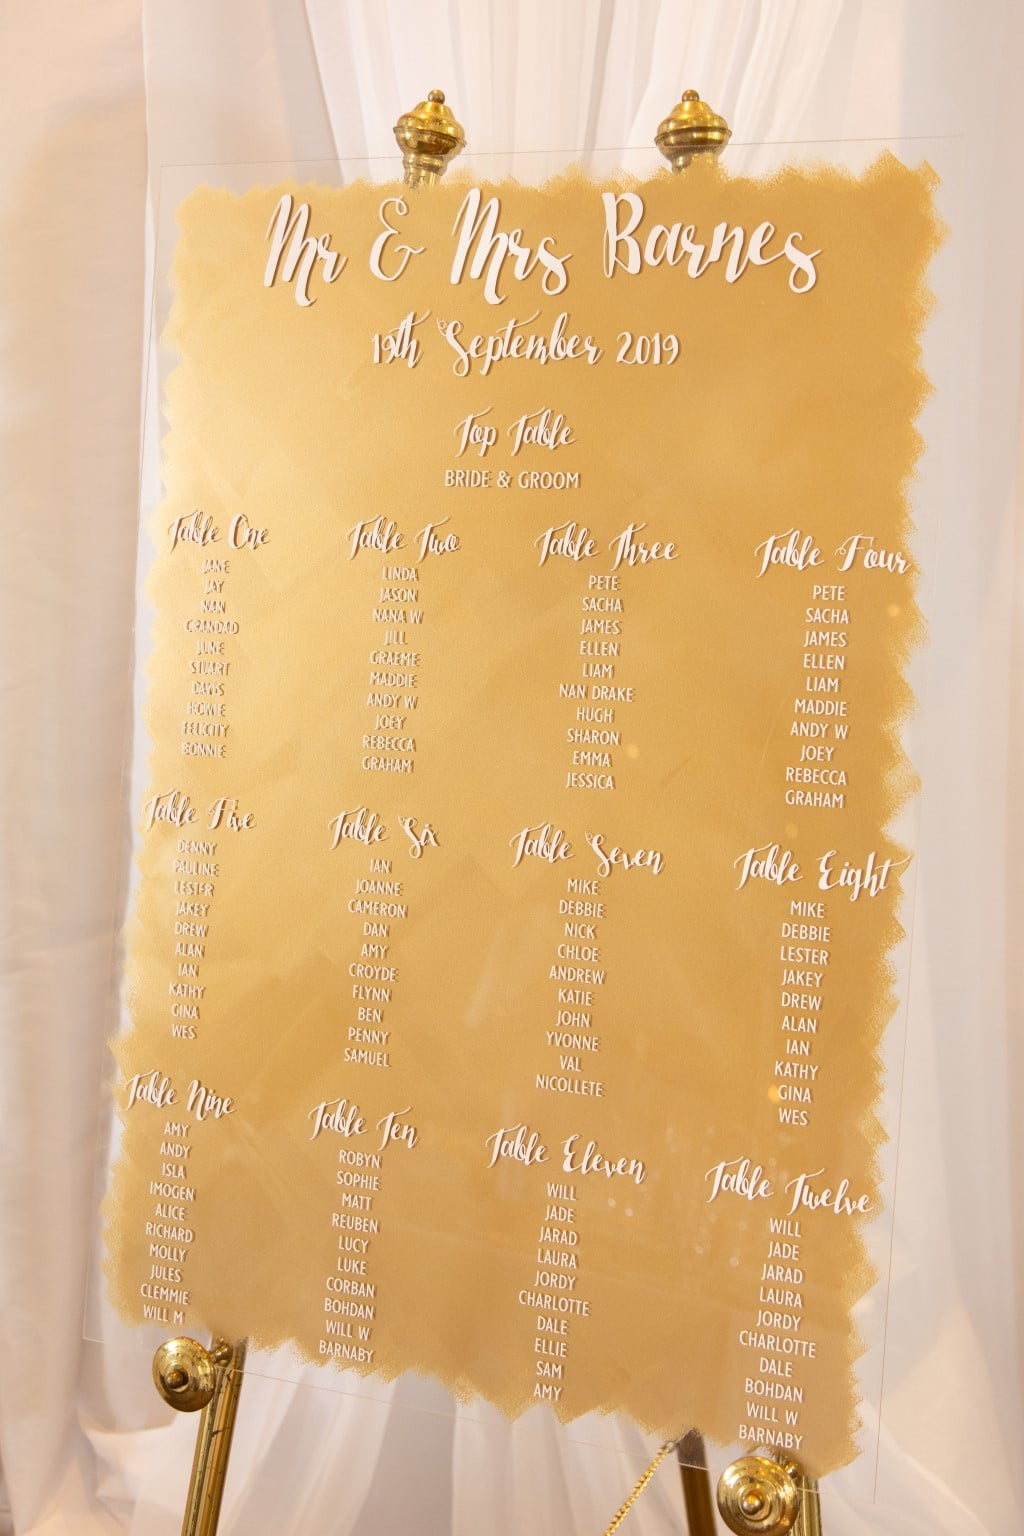 Acrylic guest seating plan featuring white font on a gold painted background.